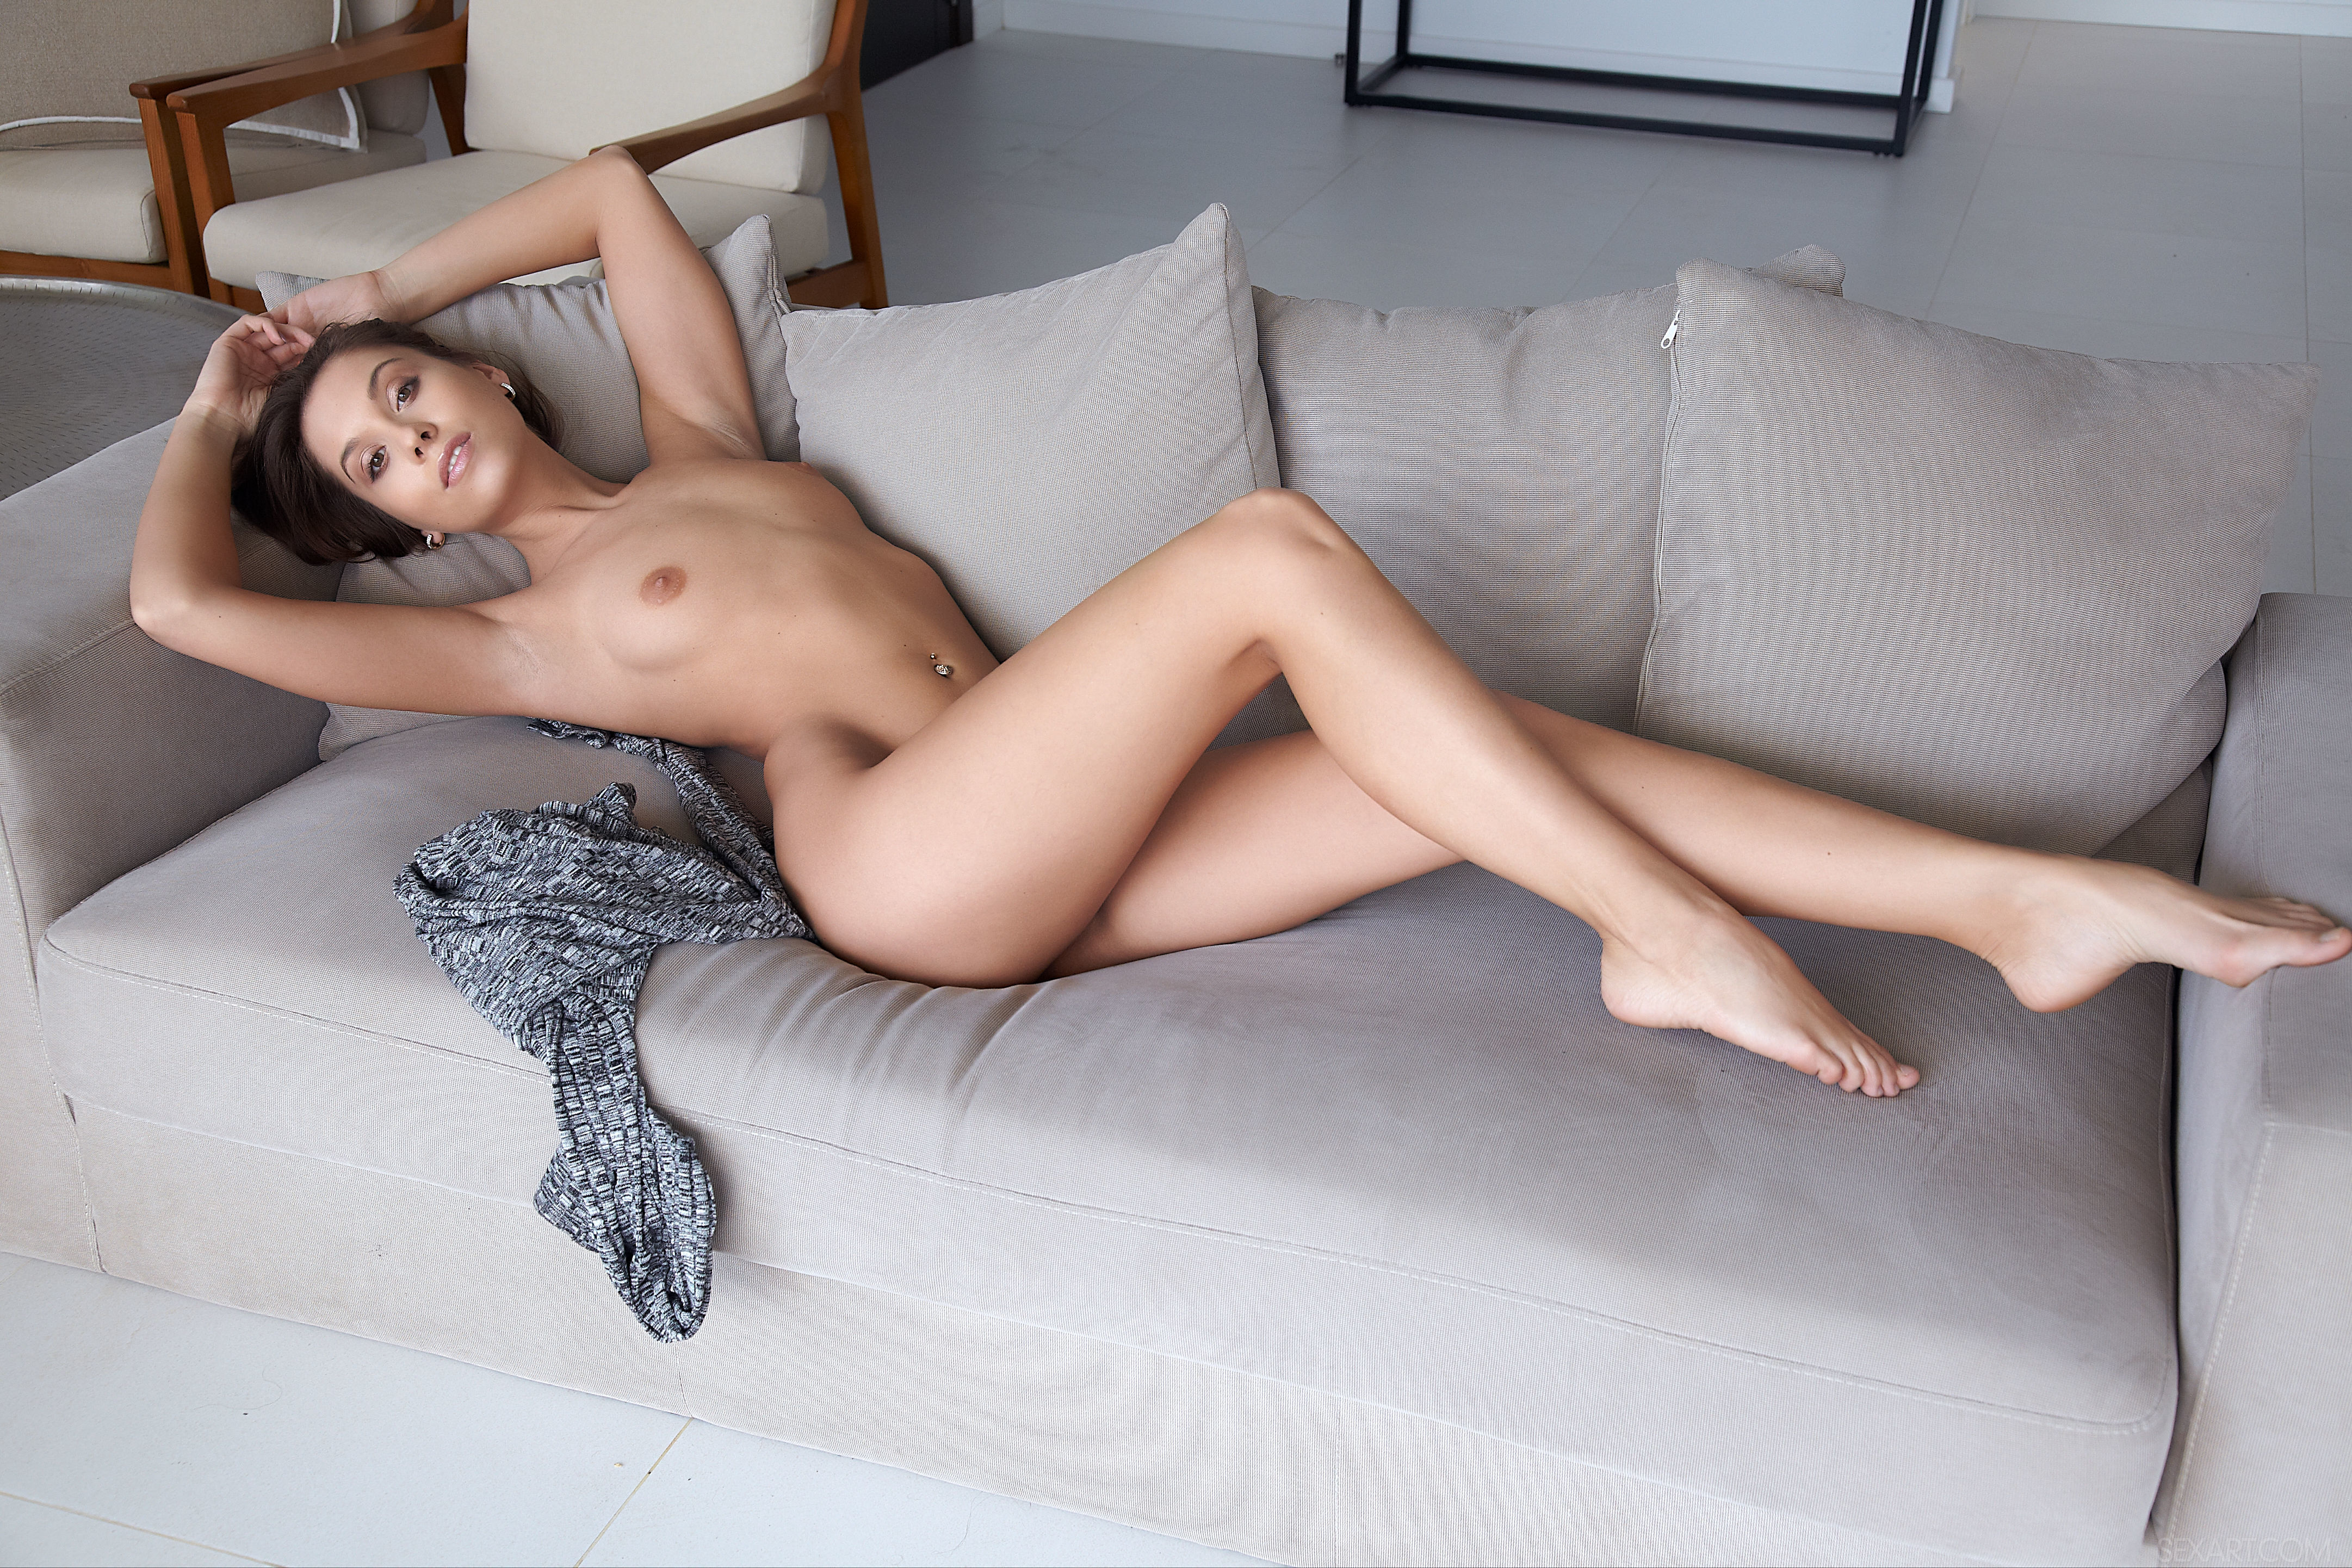 From lex naked beautiful open legs may